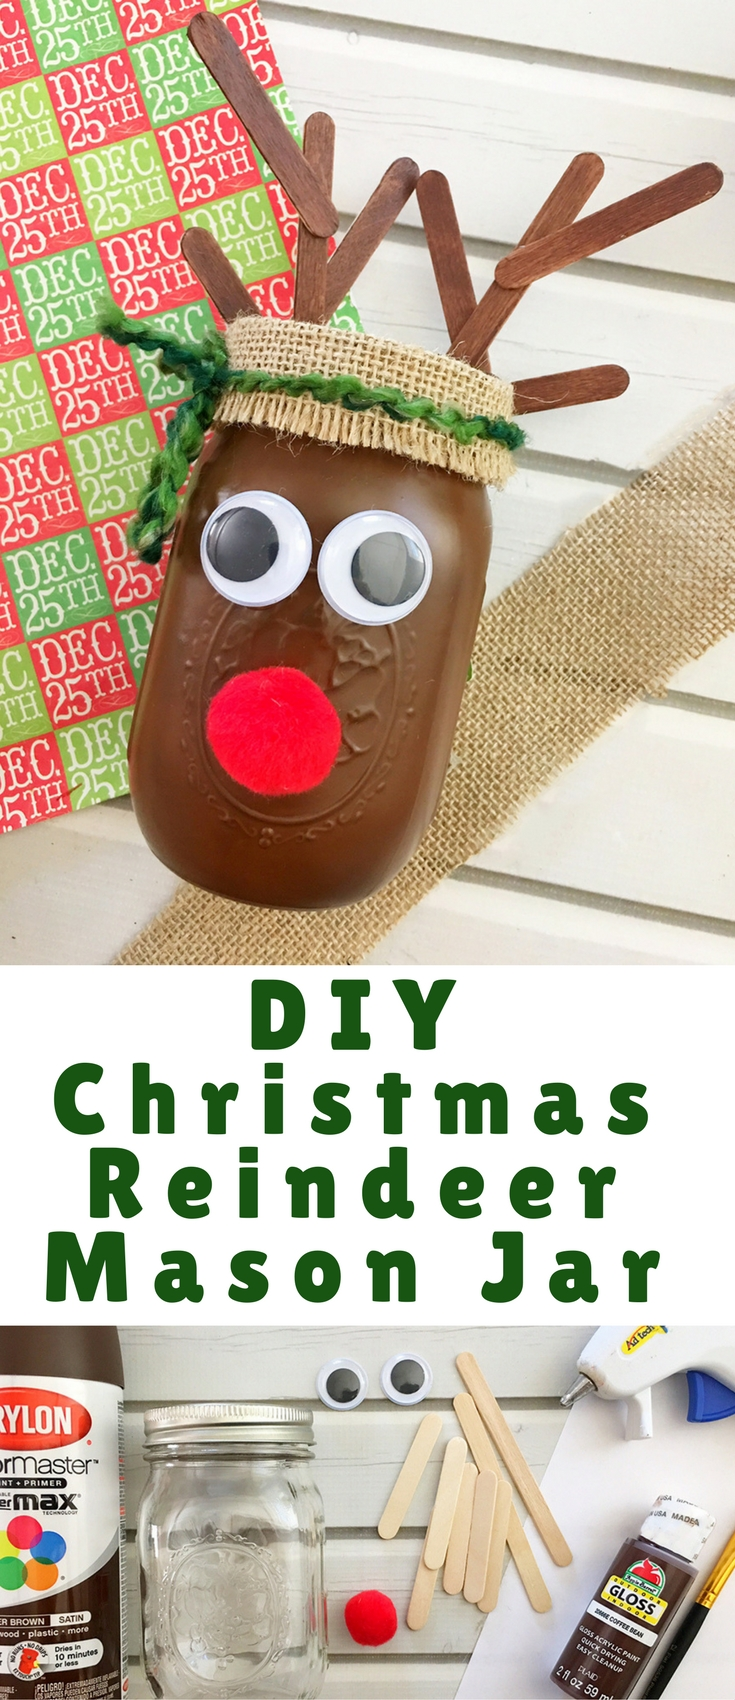 DIY Christmas Reindeer Mason Jar is perfect for holiday gift giving and home decorating.It's a fun and easy Christmas craft activity for the whole family!